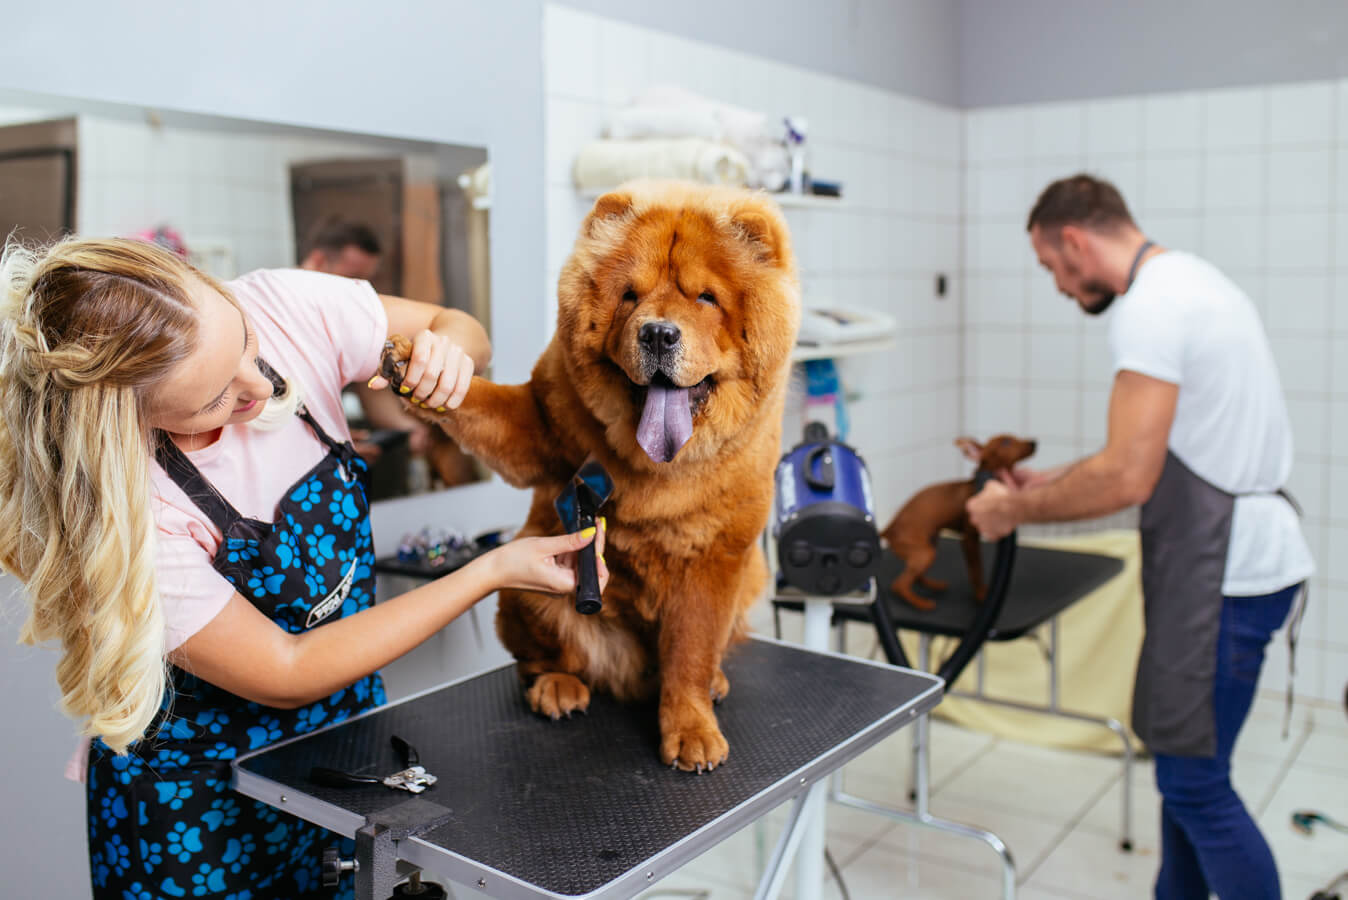 With Gingr's dog grooming software, your business will be able to grow and thrive.